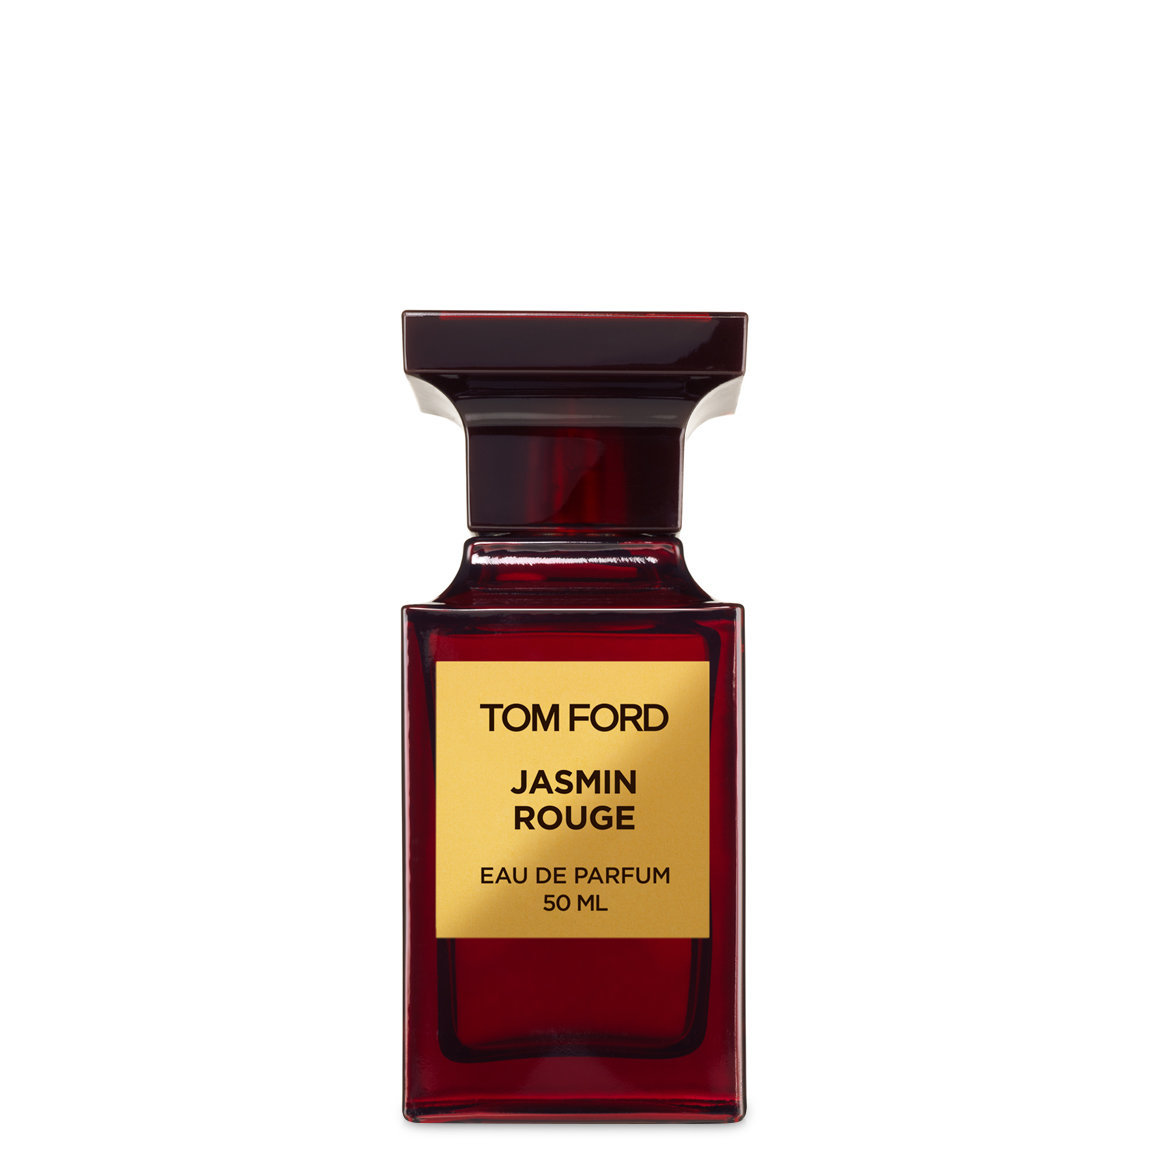 TOM FORD Jasmin Rouge 50 ml alternative view 1 - product swatch.